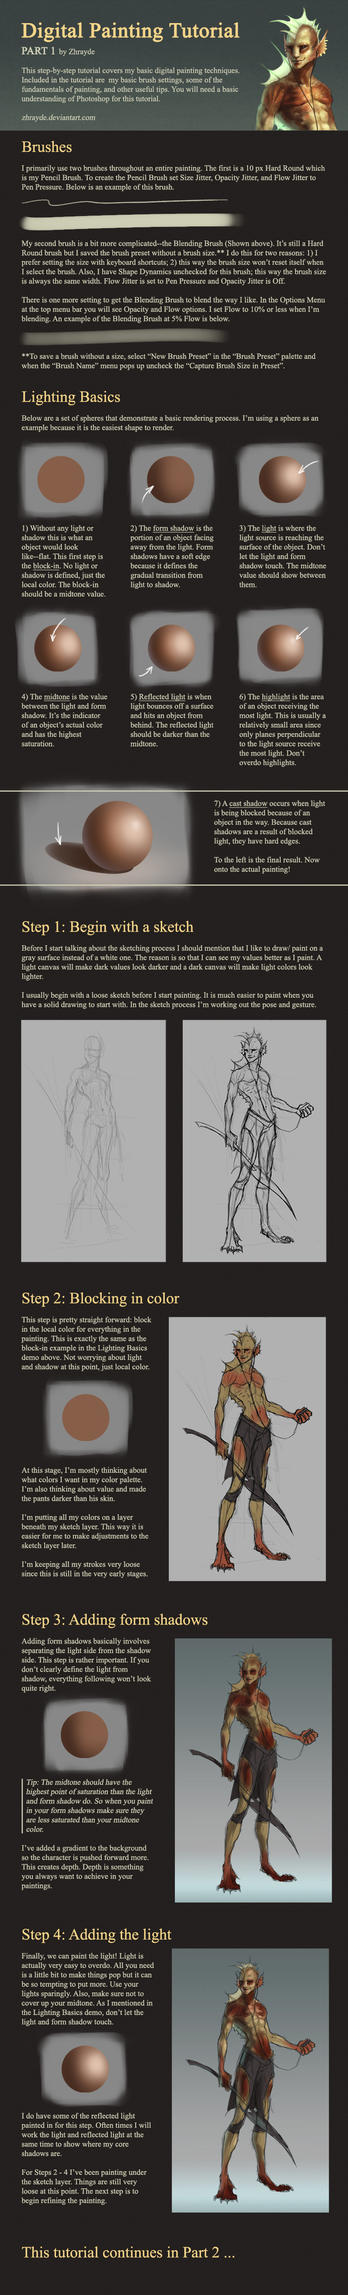 Digital Painting Tutorial - Part 1 by Zhrayde